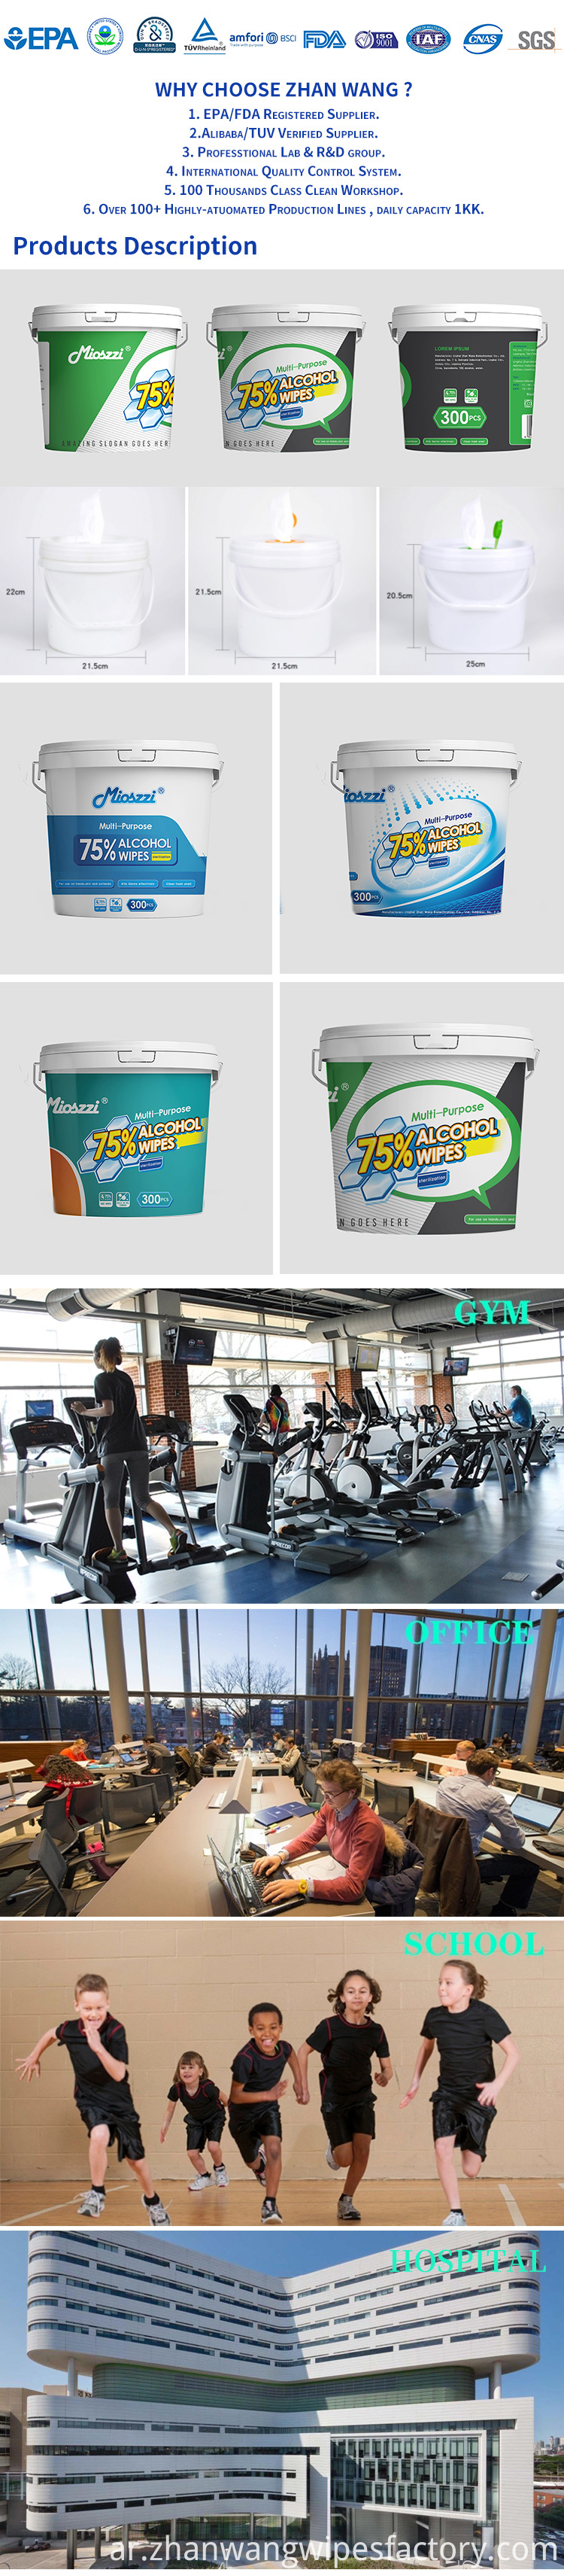 Disinfectant Wipes Safe For Gym Equipment